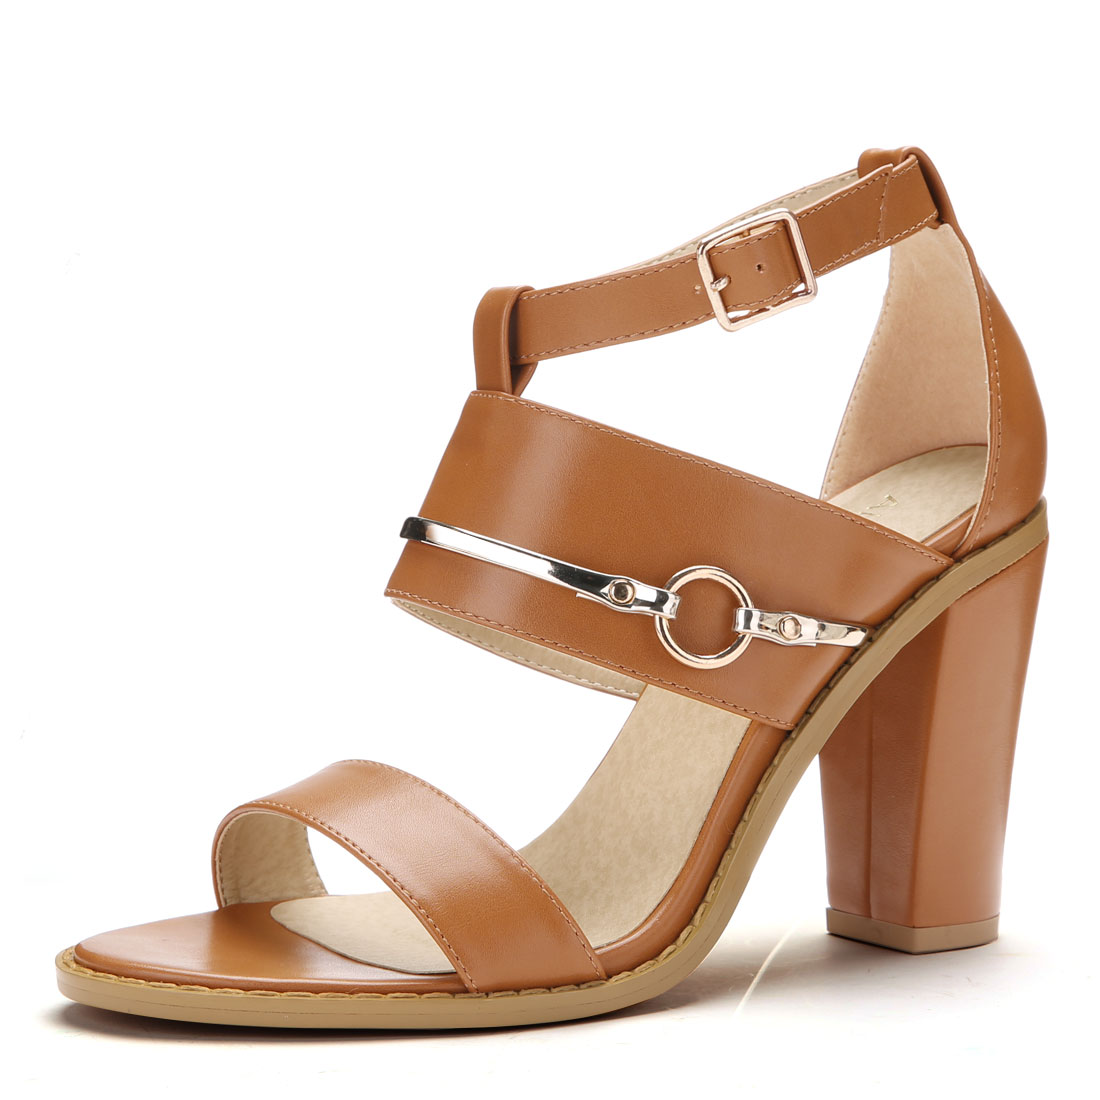 Women Open Toe Chunky High Heel Ankle Strap Sandals Brown US 6